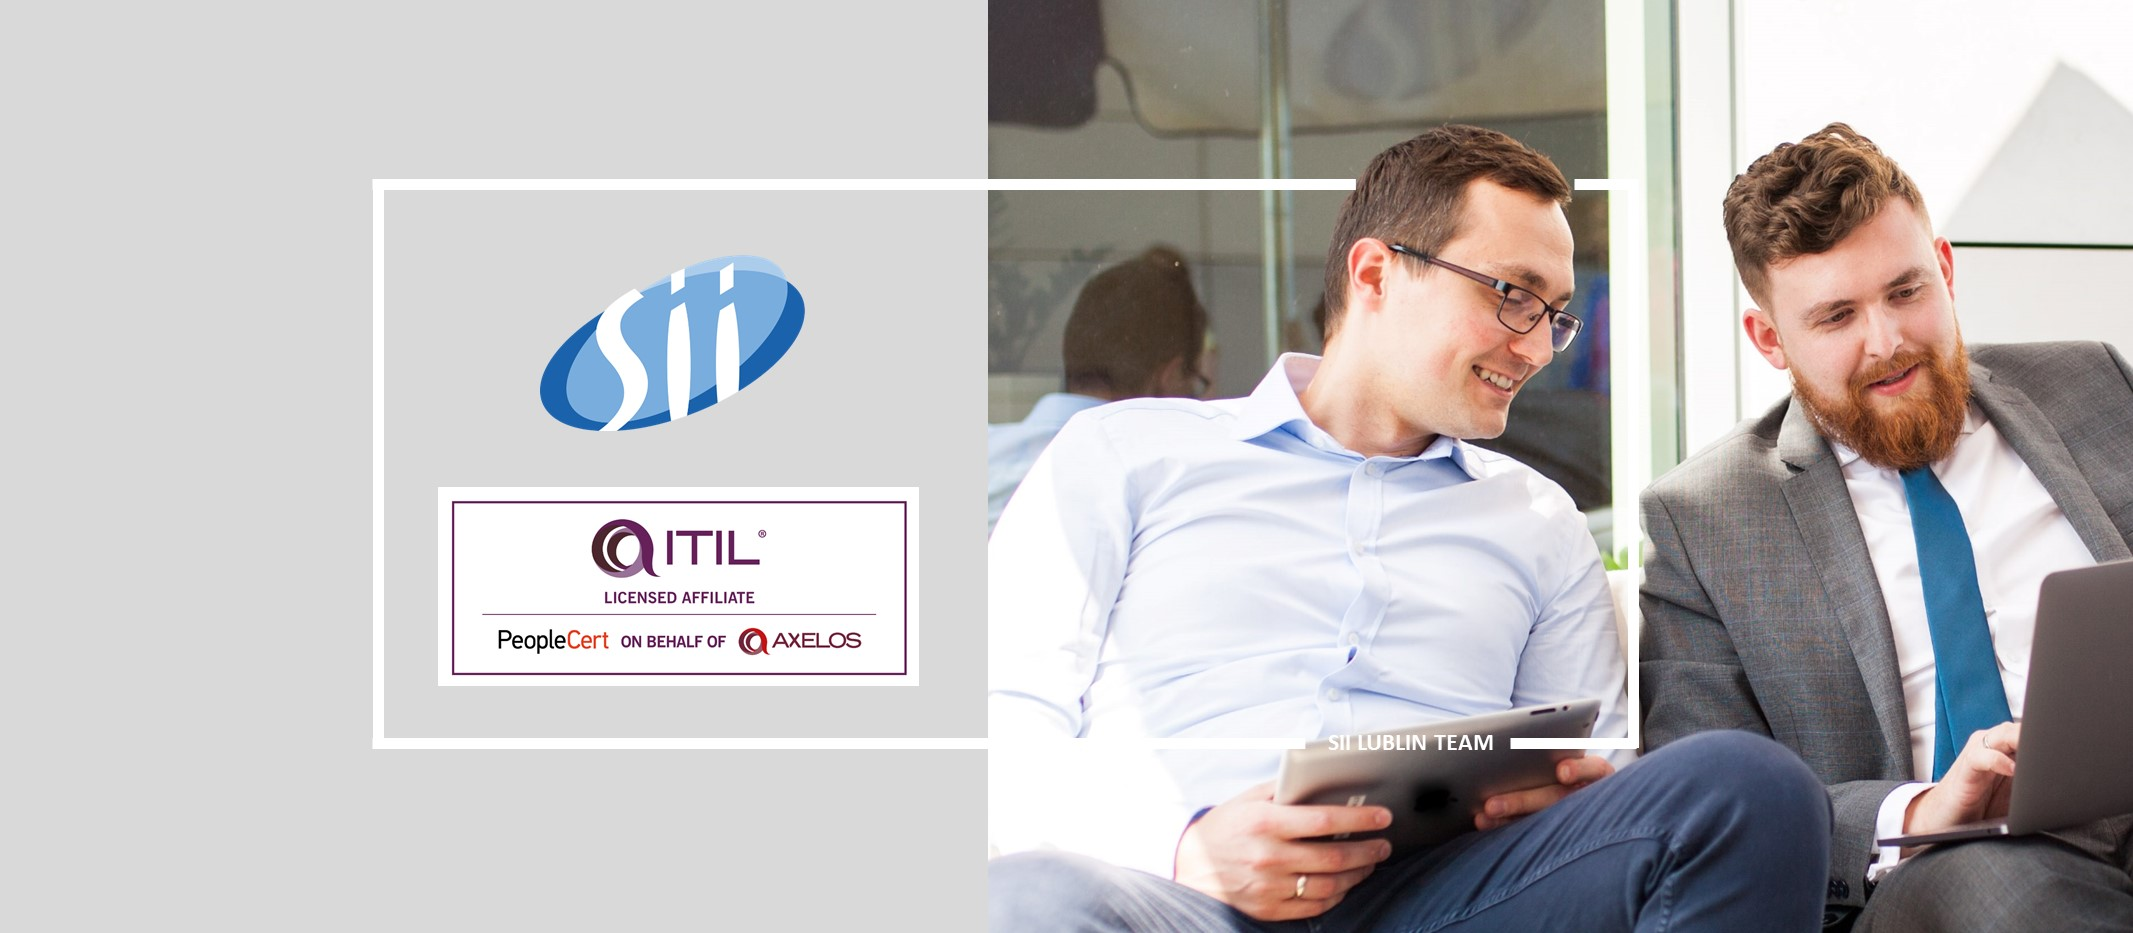 IT service management in the era of digital transformation. The latest ITIL®4 training programme now realized by the Sii Training Practice